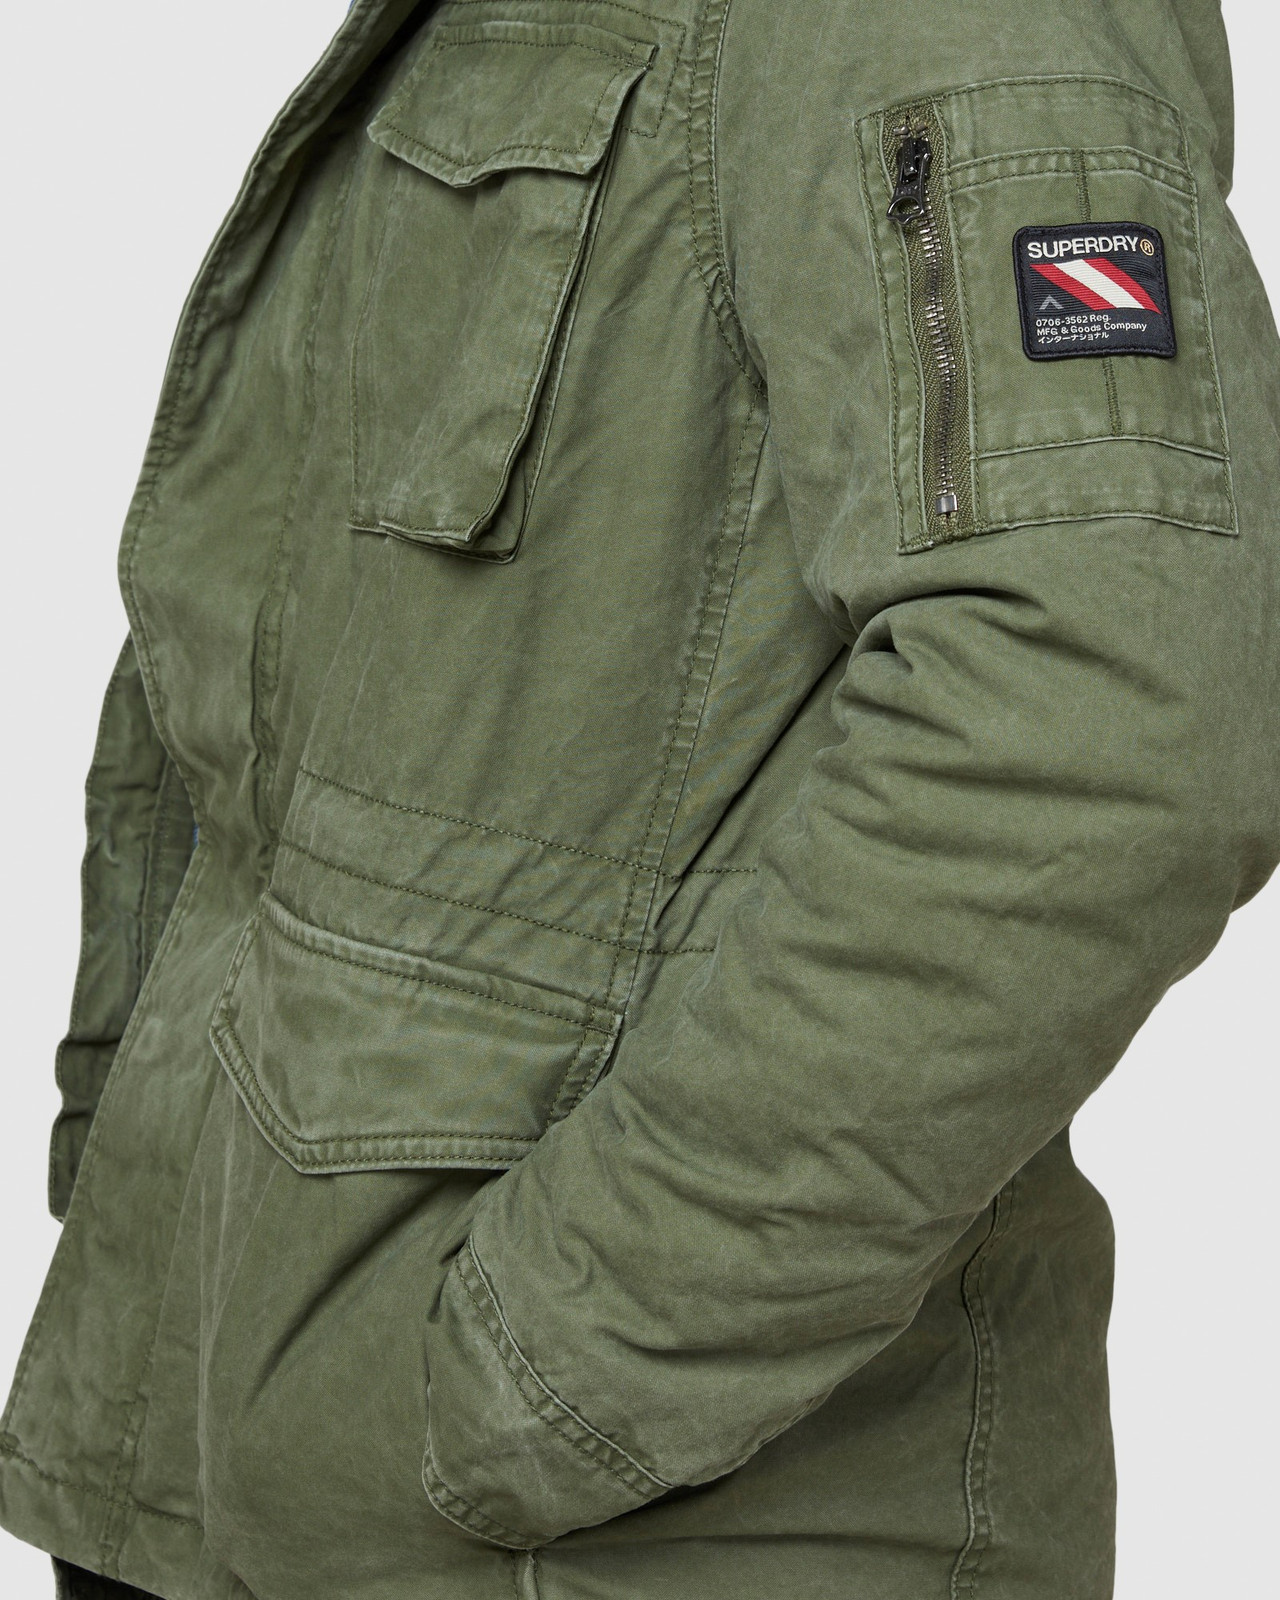 Superdry Mens CLASSIC ROOKIE JACKET Green Military Jackets 6